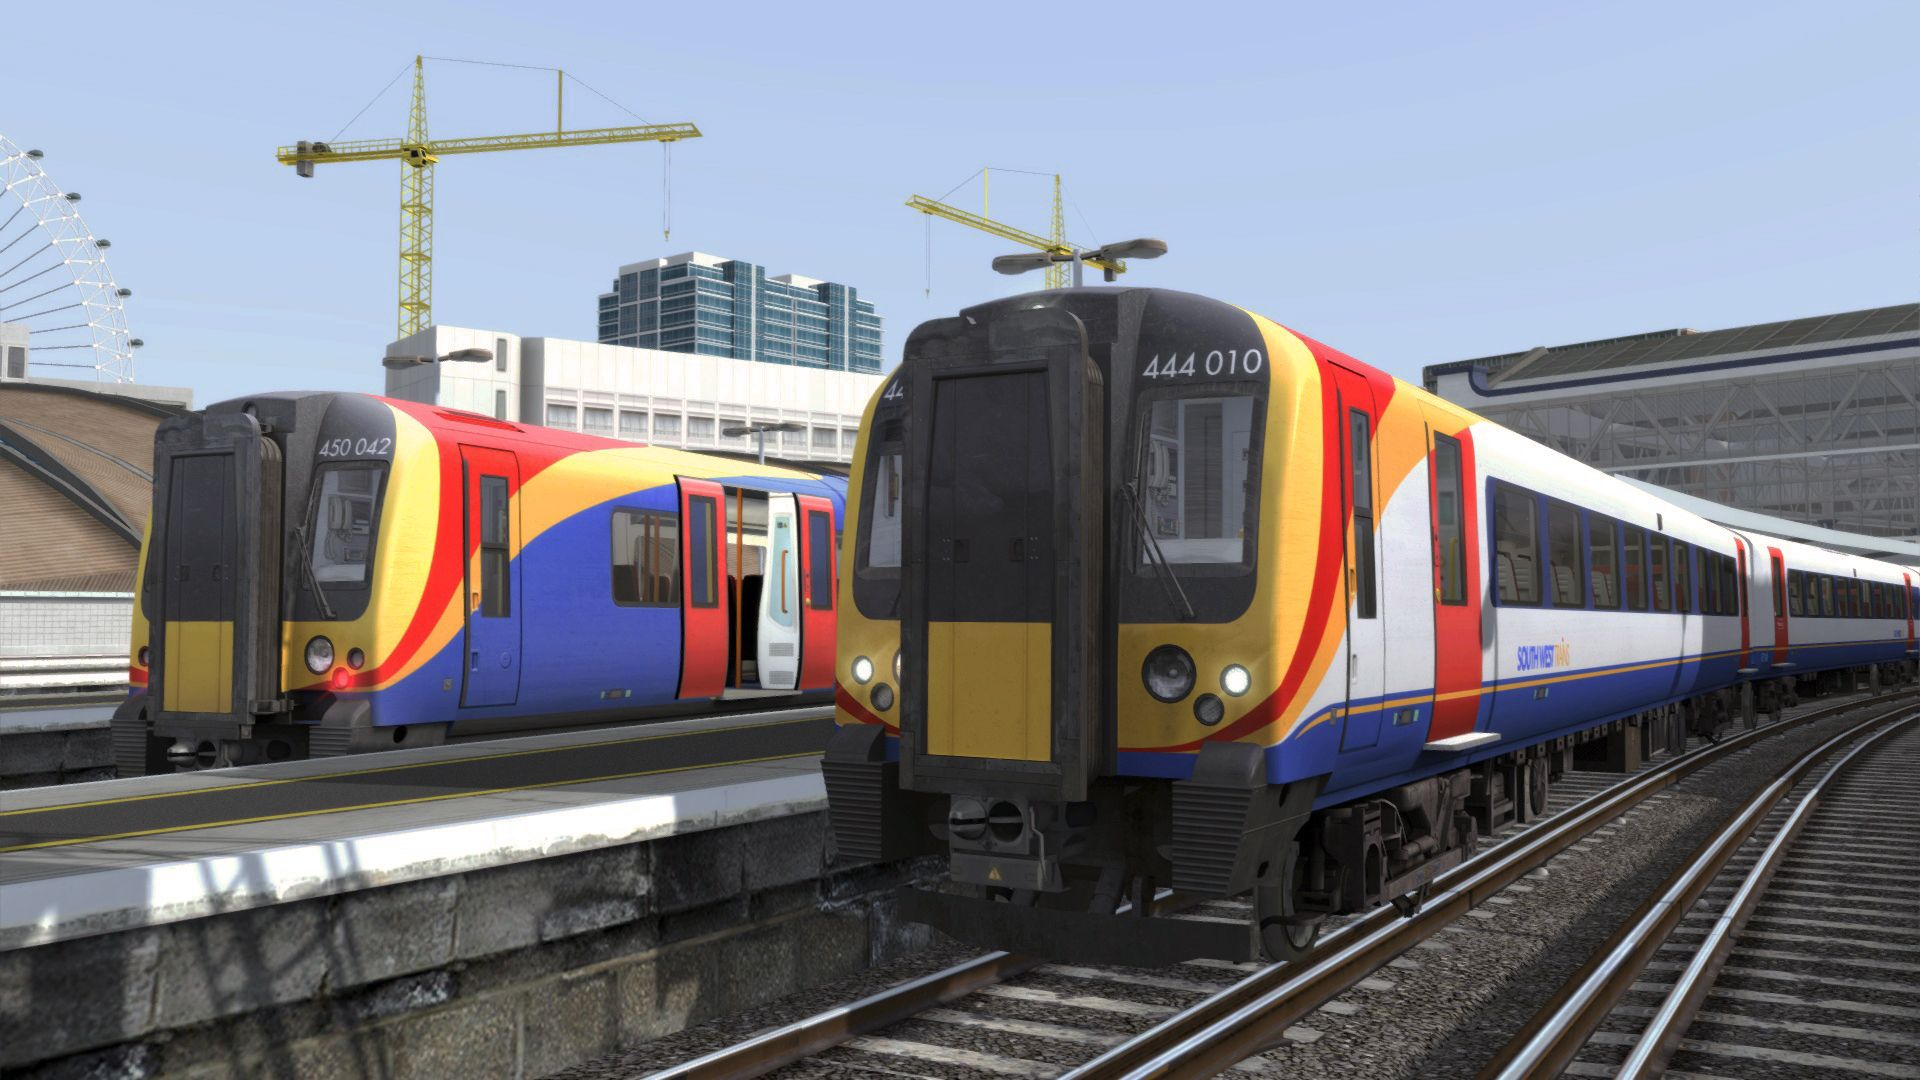 Image showing screenshot of the Class 444 in the Portsmouth Direct Line: London Waterloo - Portsmouth route